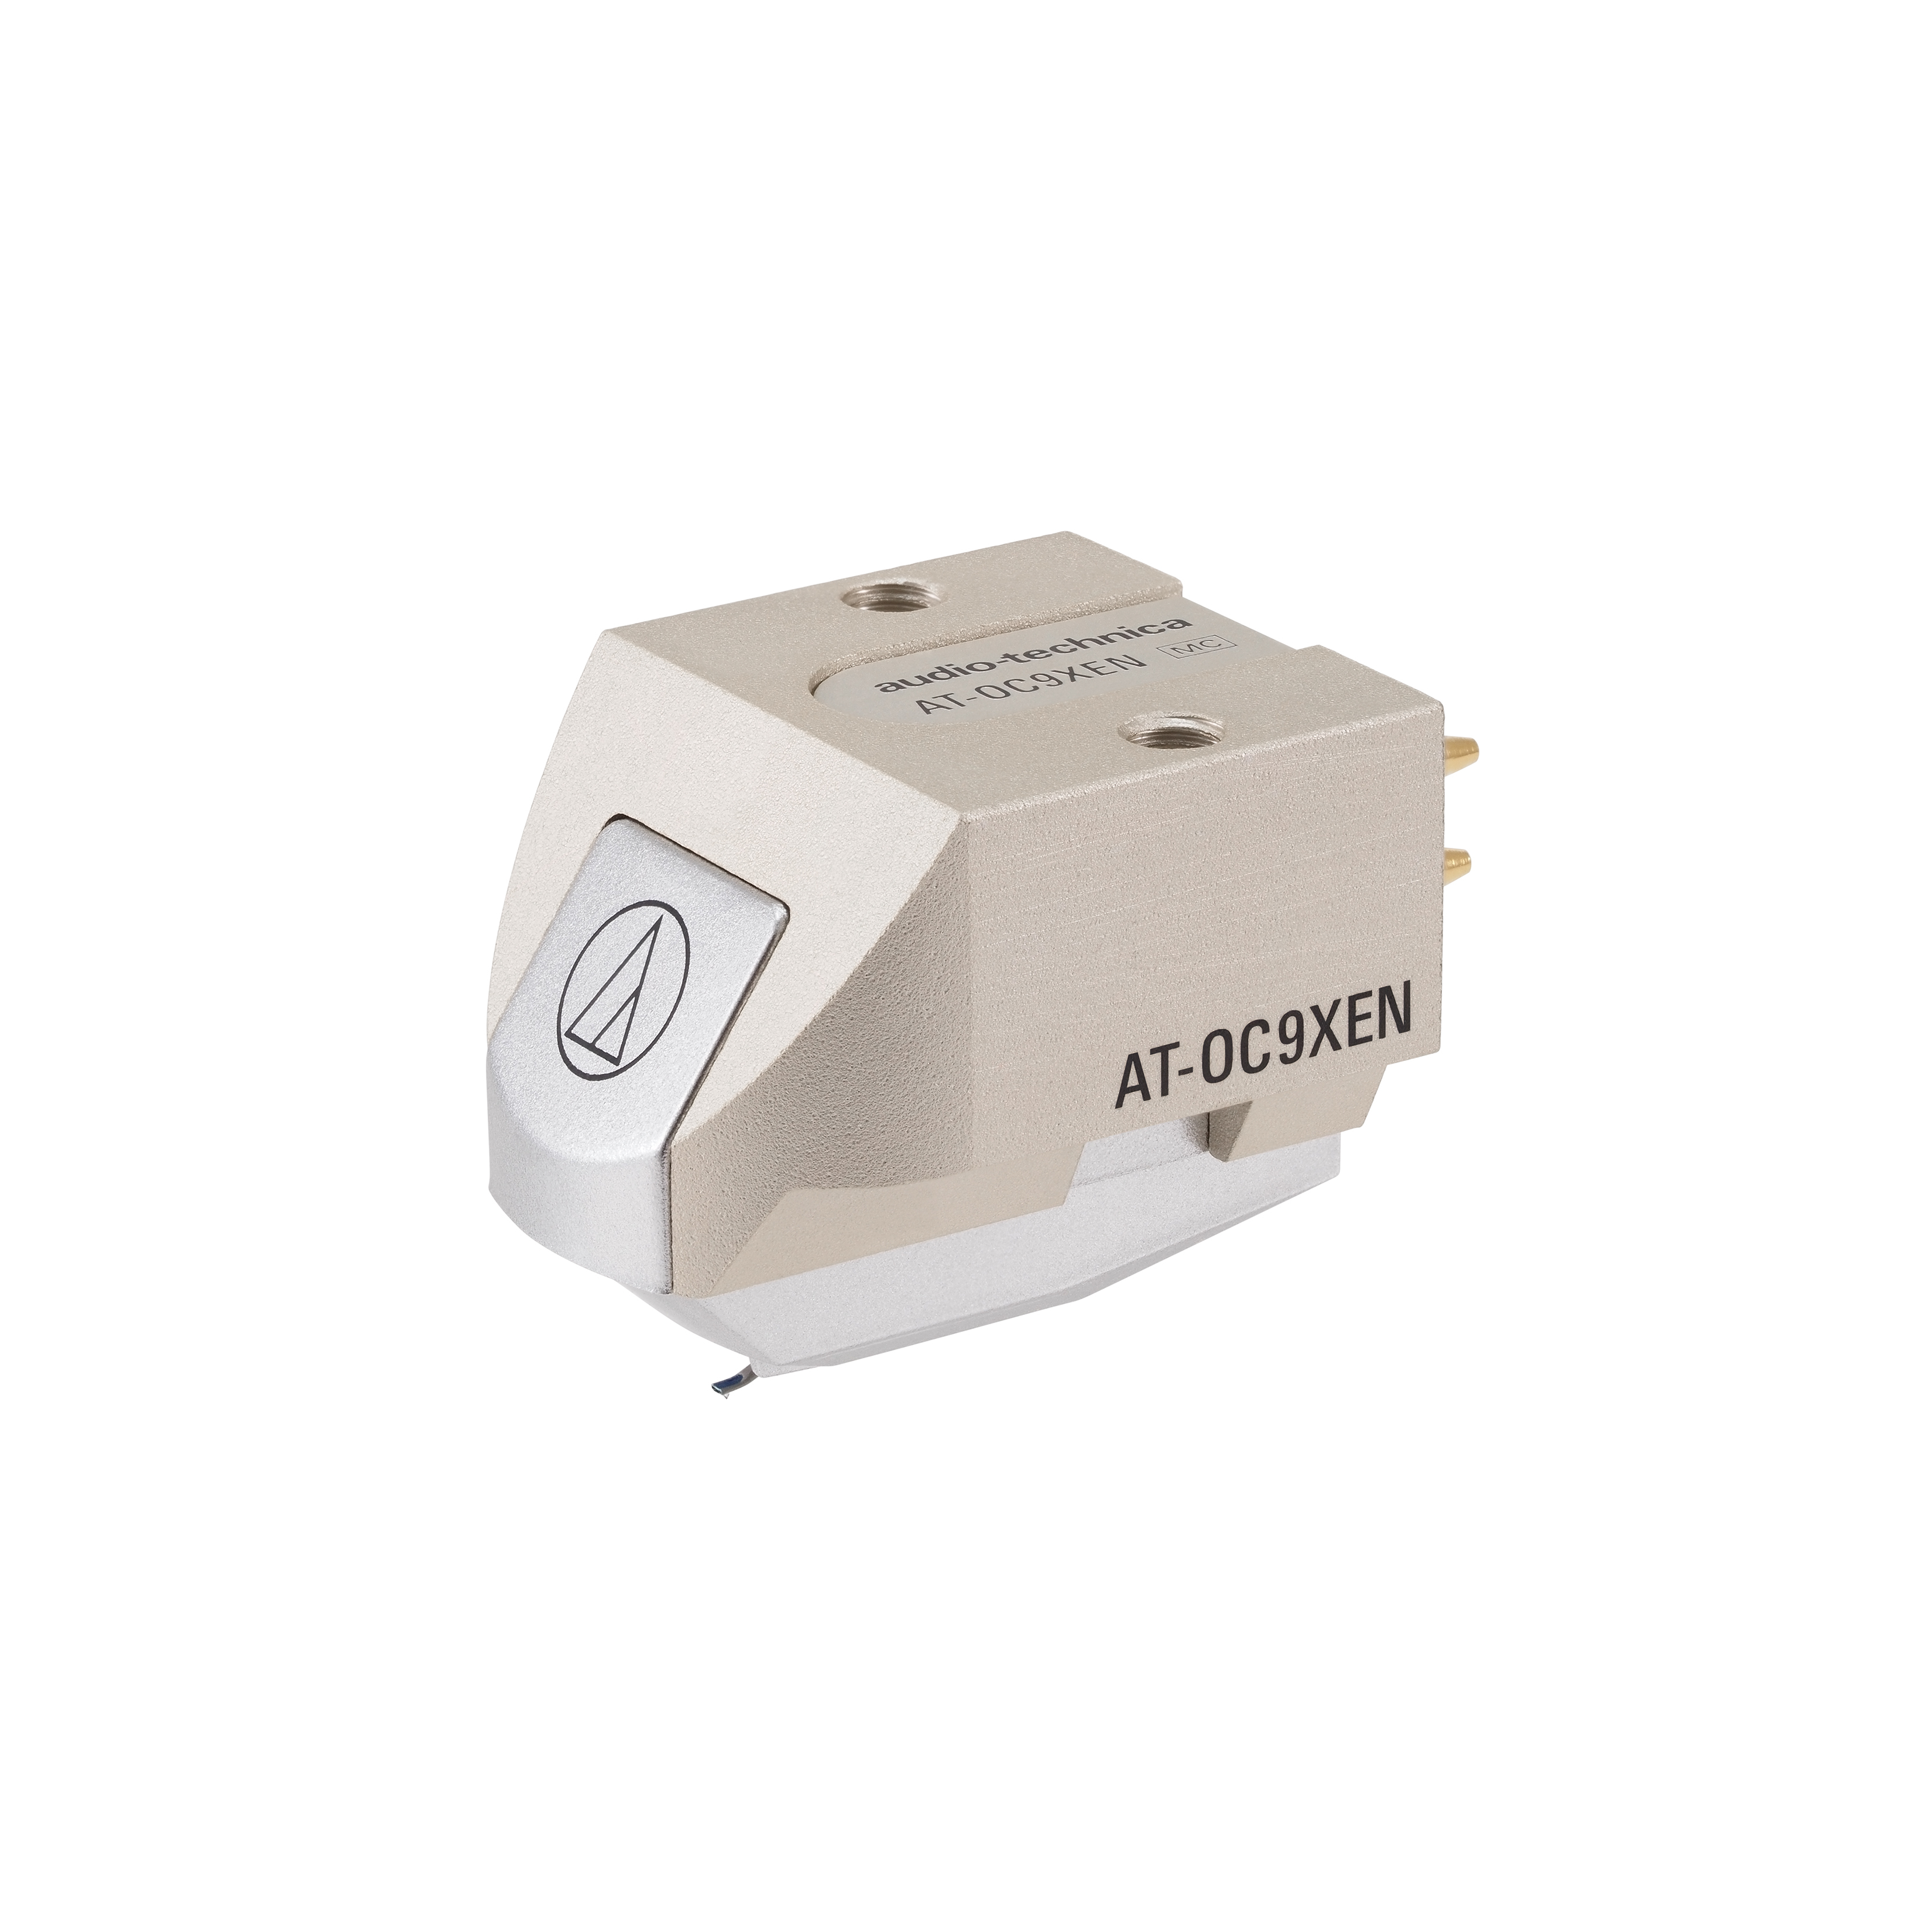 Audio Technica AT-OC9X-EN Moving Coil Phono Cartridge